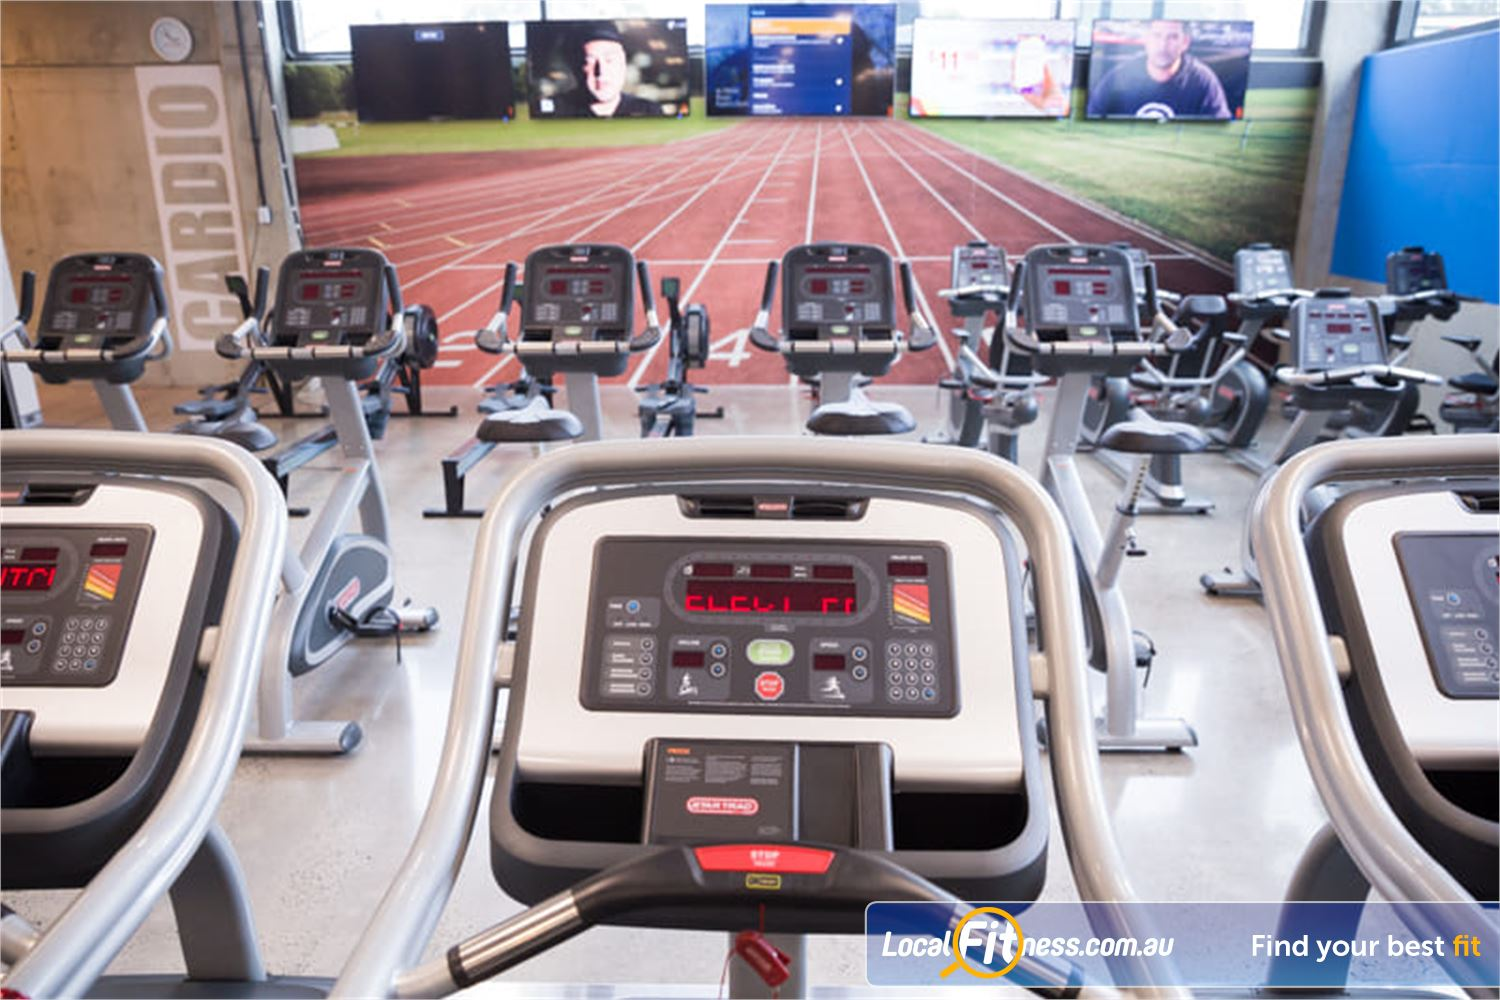 Fit n Fast Wetherill Park 24/7 Wetherill Park gym access to our cardio area.